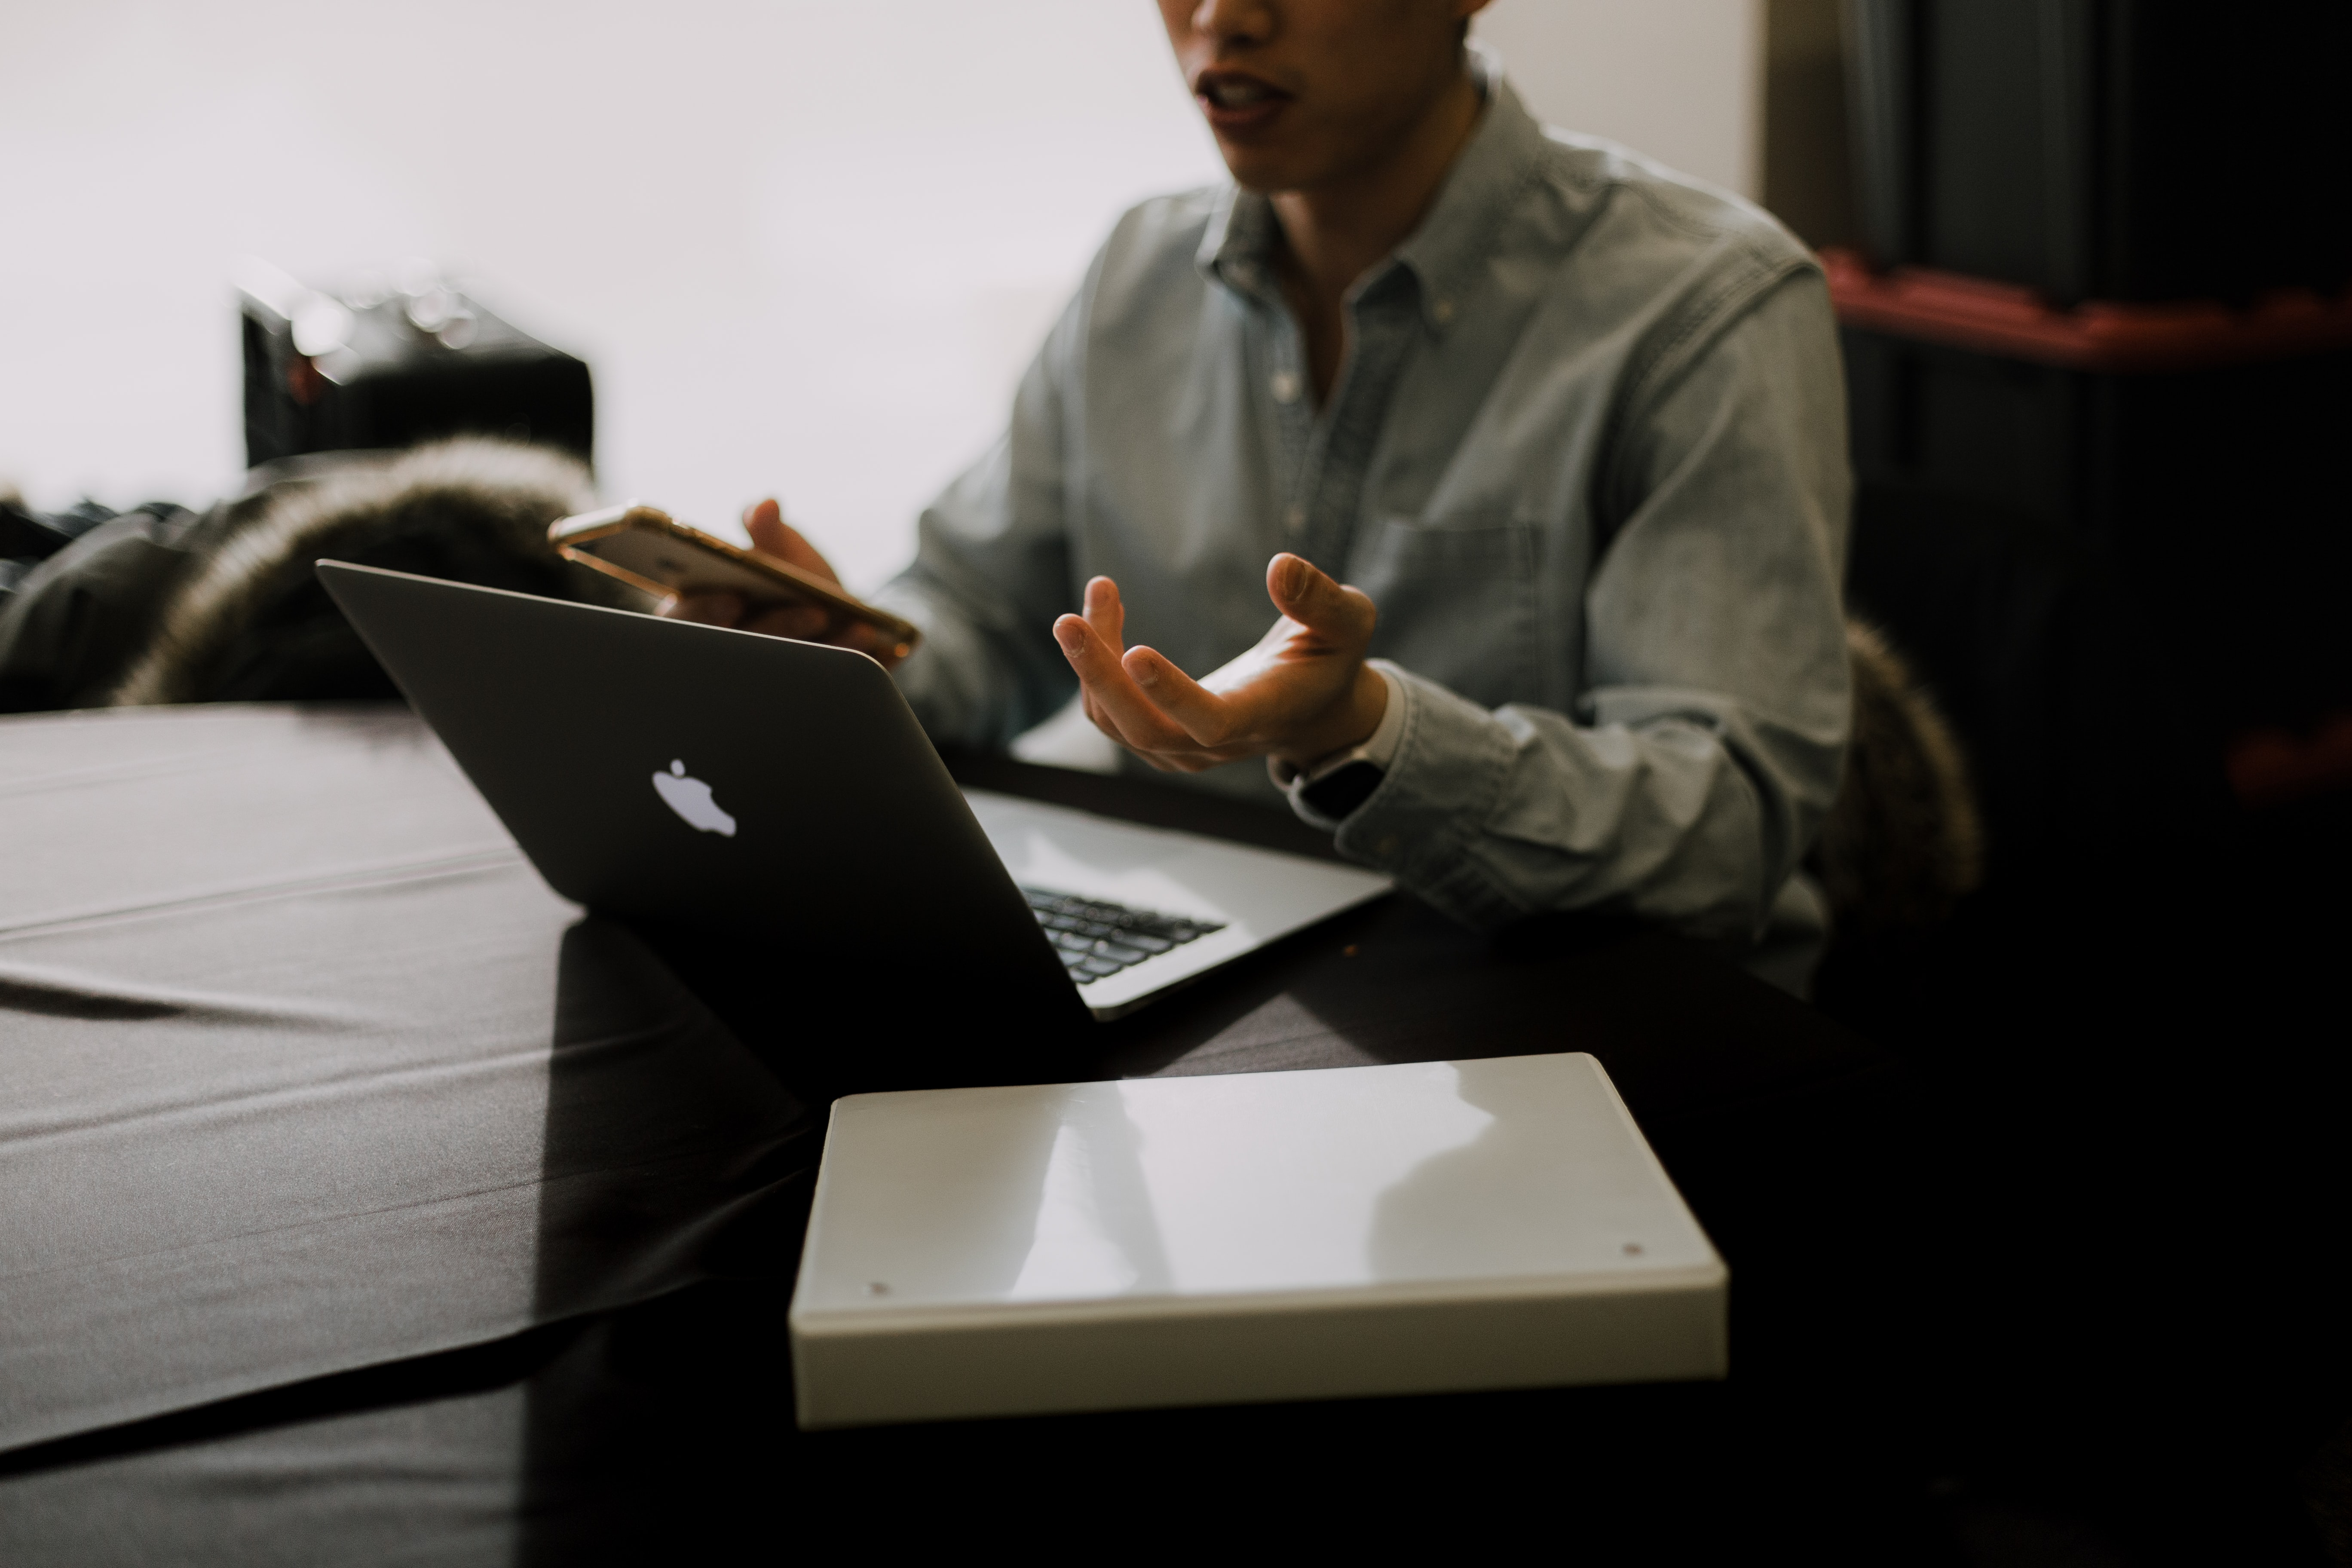 Man working at laptop on planning 2021 meeting program strategy   Global agency, BCD Meetings & Events